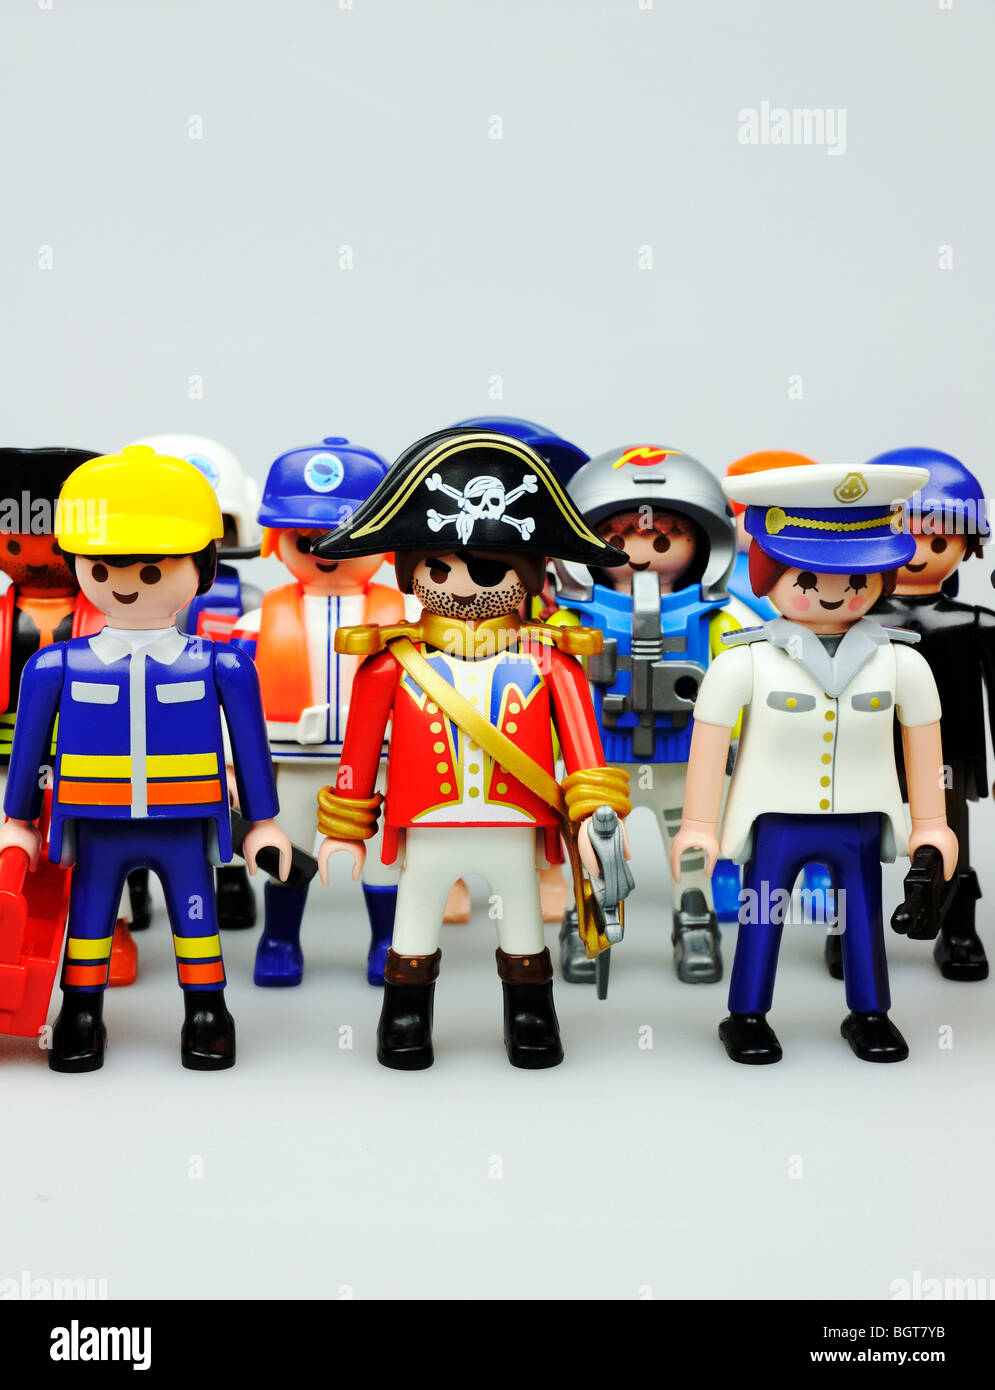 playmobil figures stockfotos playmobil figures bilder. Black Bedroom Furniture Sets. Home Design Ideas